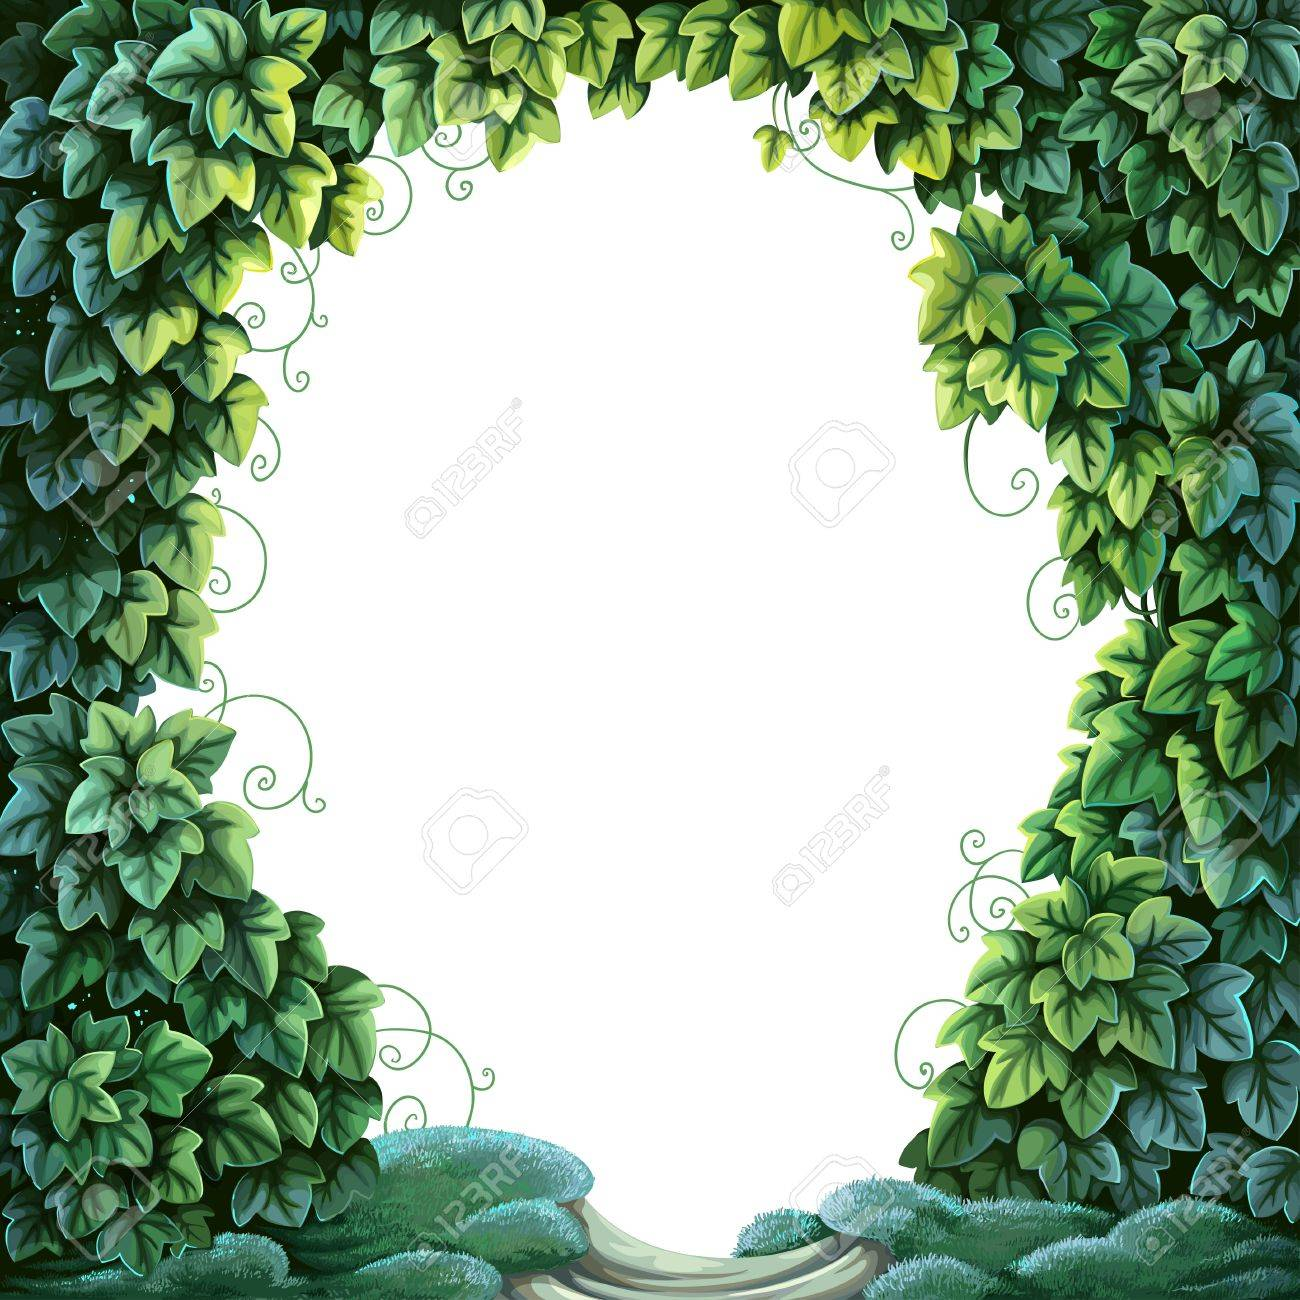 Enchanted Forest Clipart.